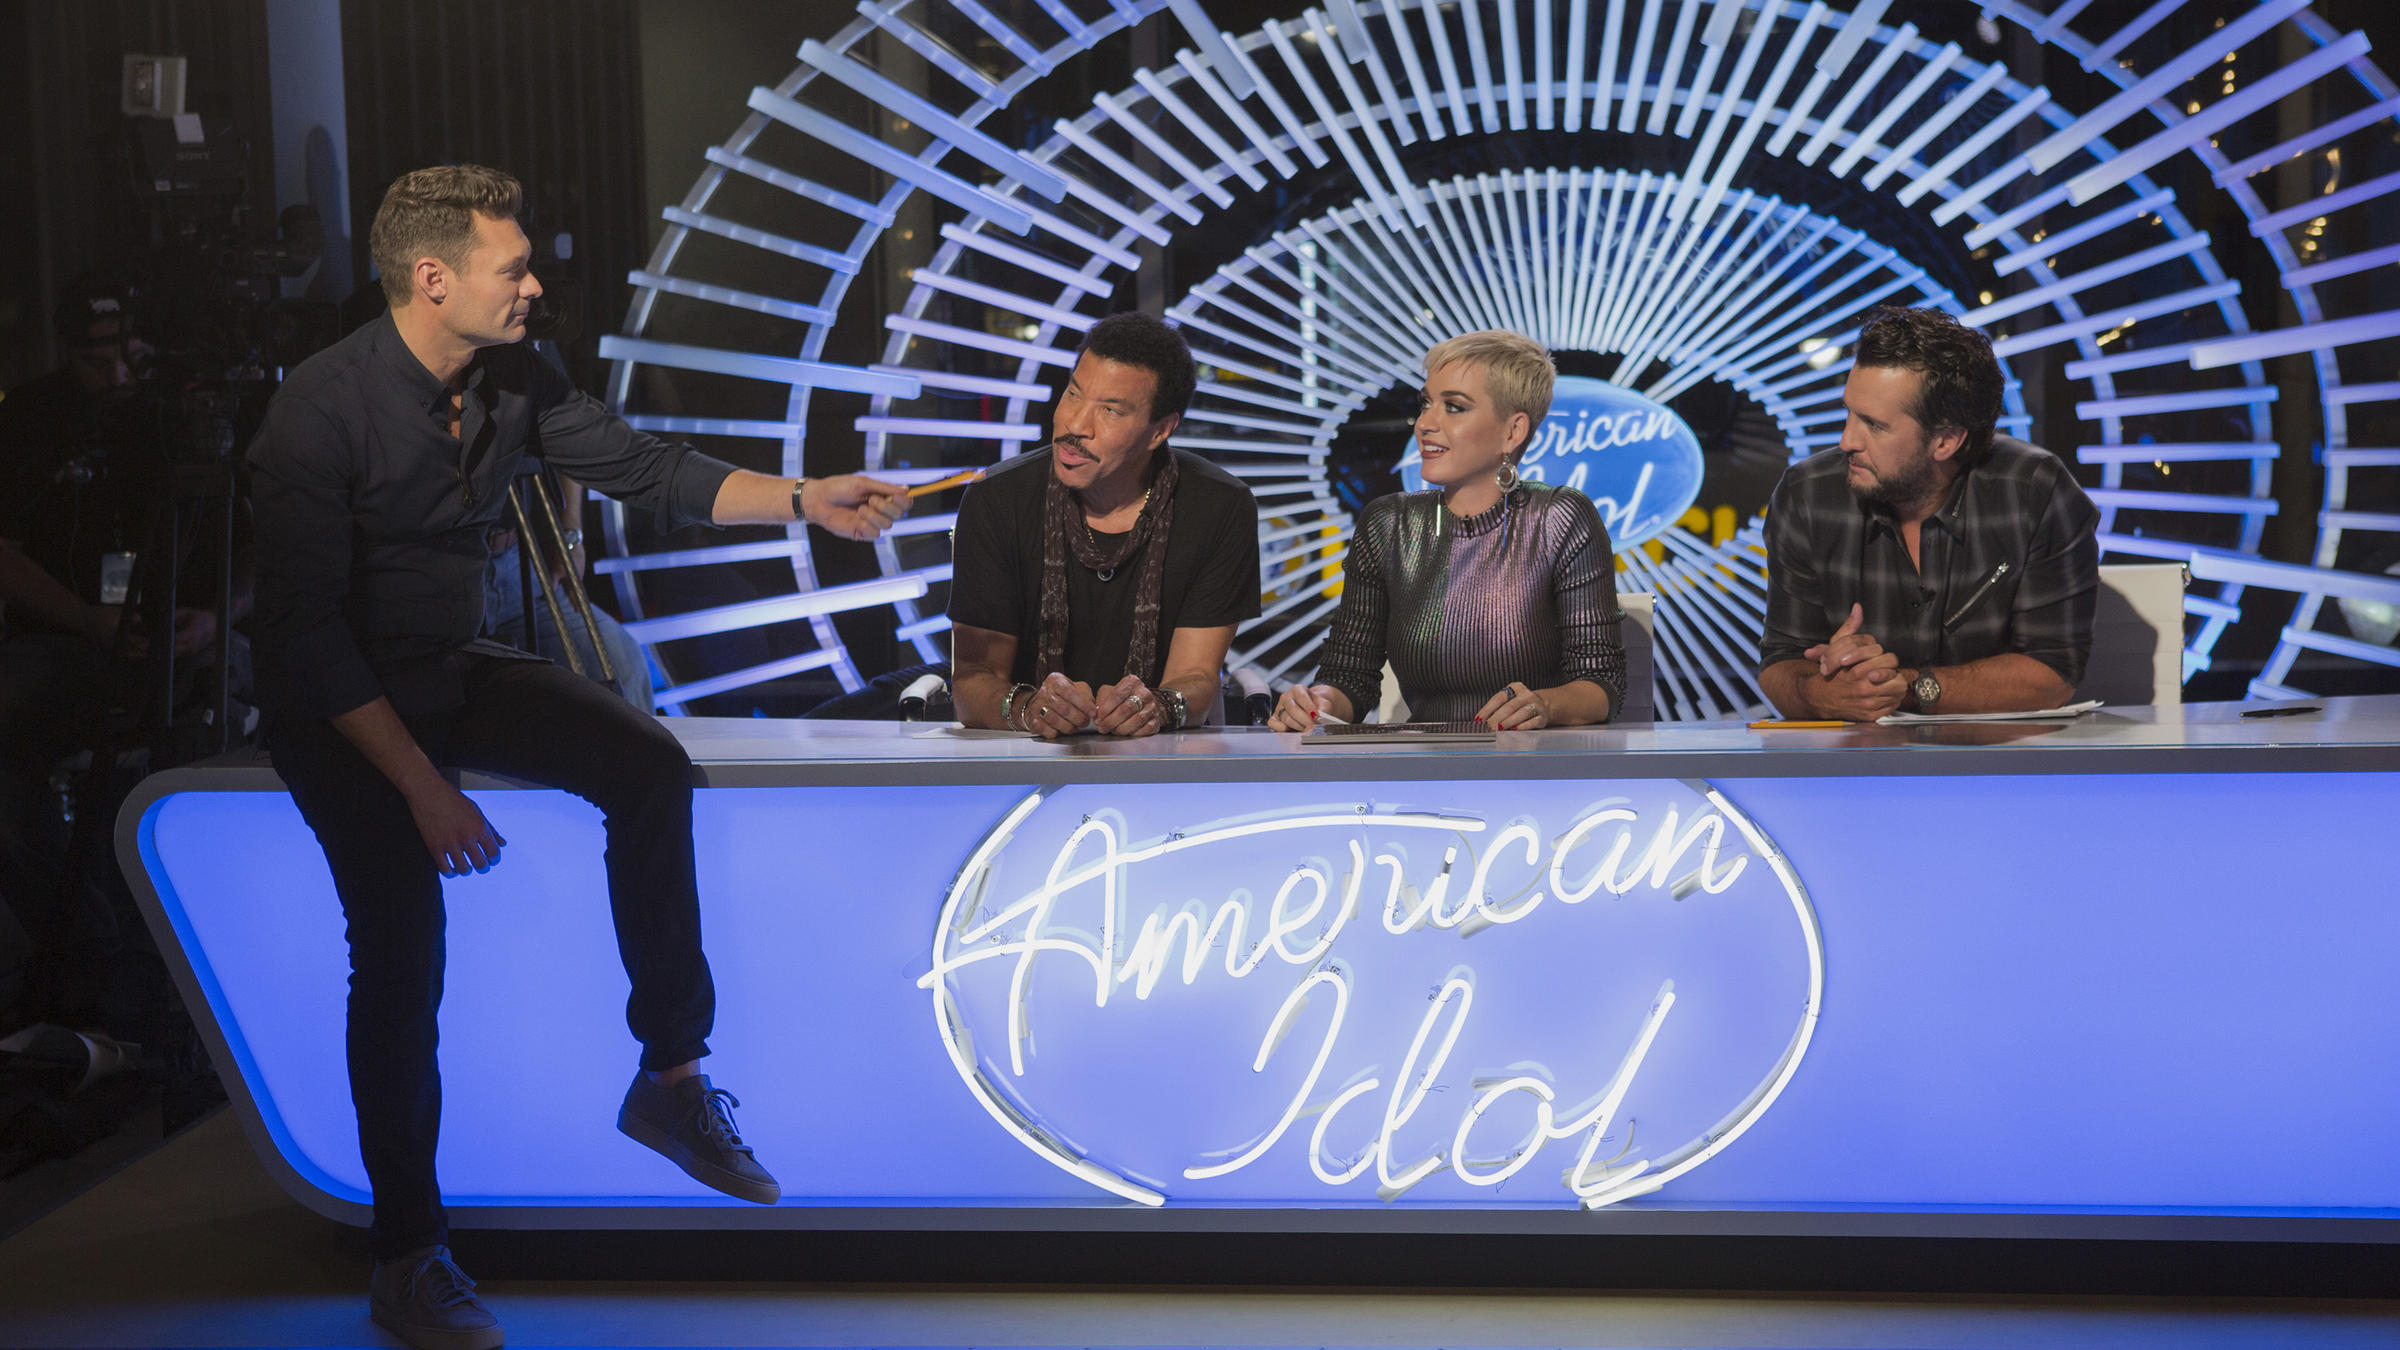 american idol' reboot has 3 potential problems, but the pitch ain't